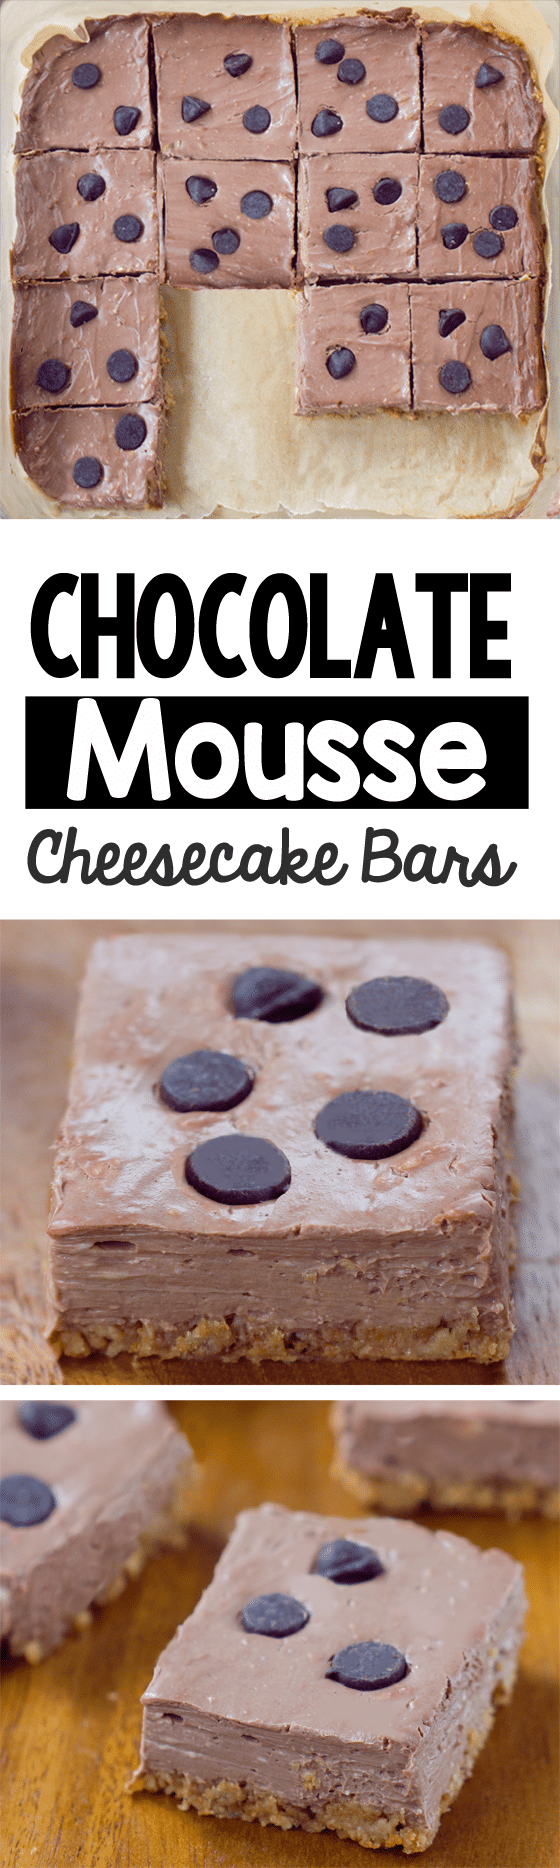 Easy Chocolate Mousse Cheesecake Bars